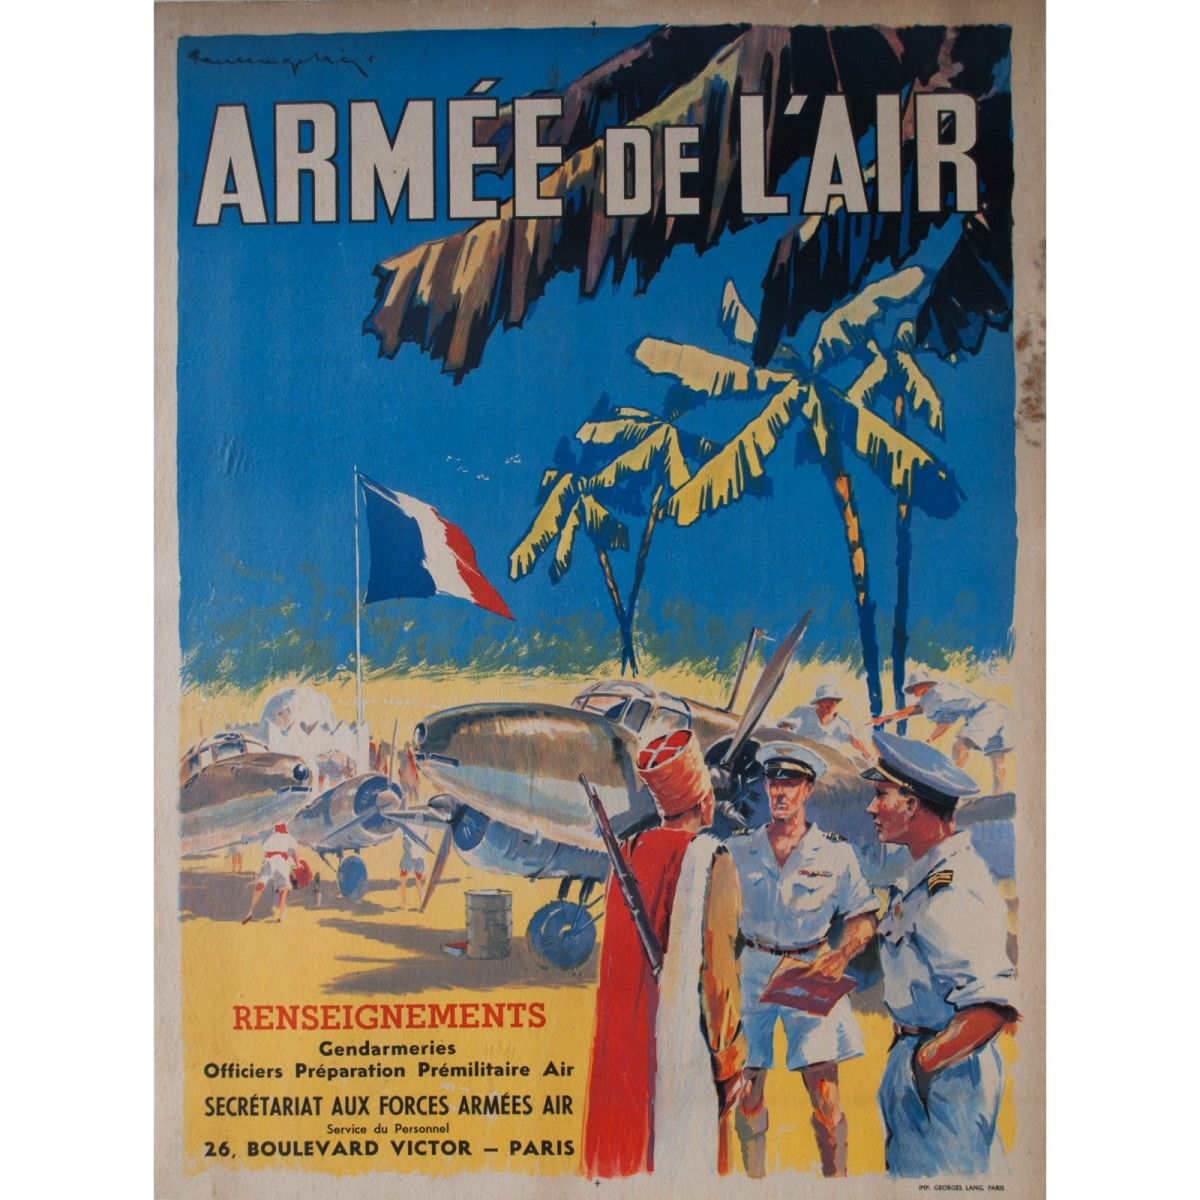 A 1947 poster, but still looking reasonably plausible for a French 1940 recruitment poster.